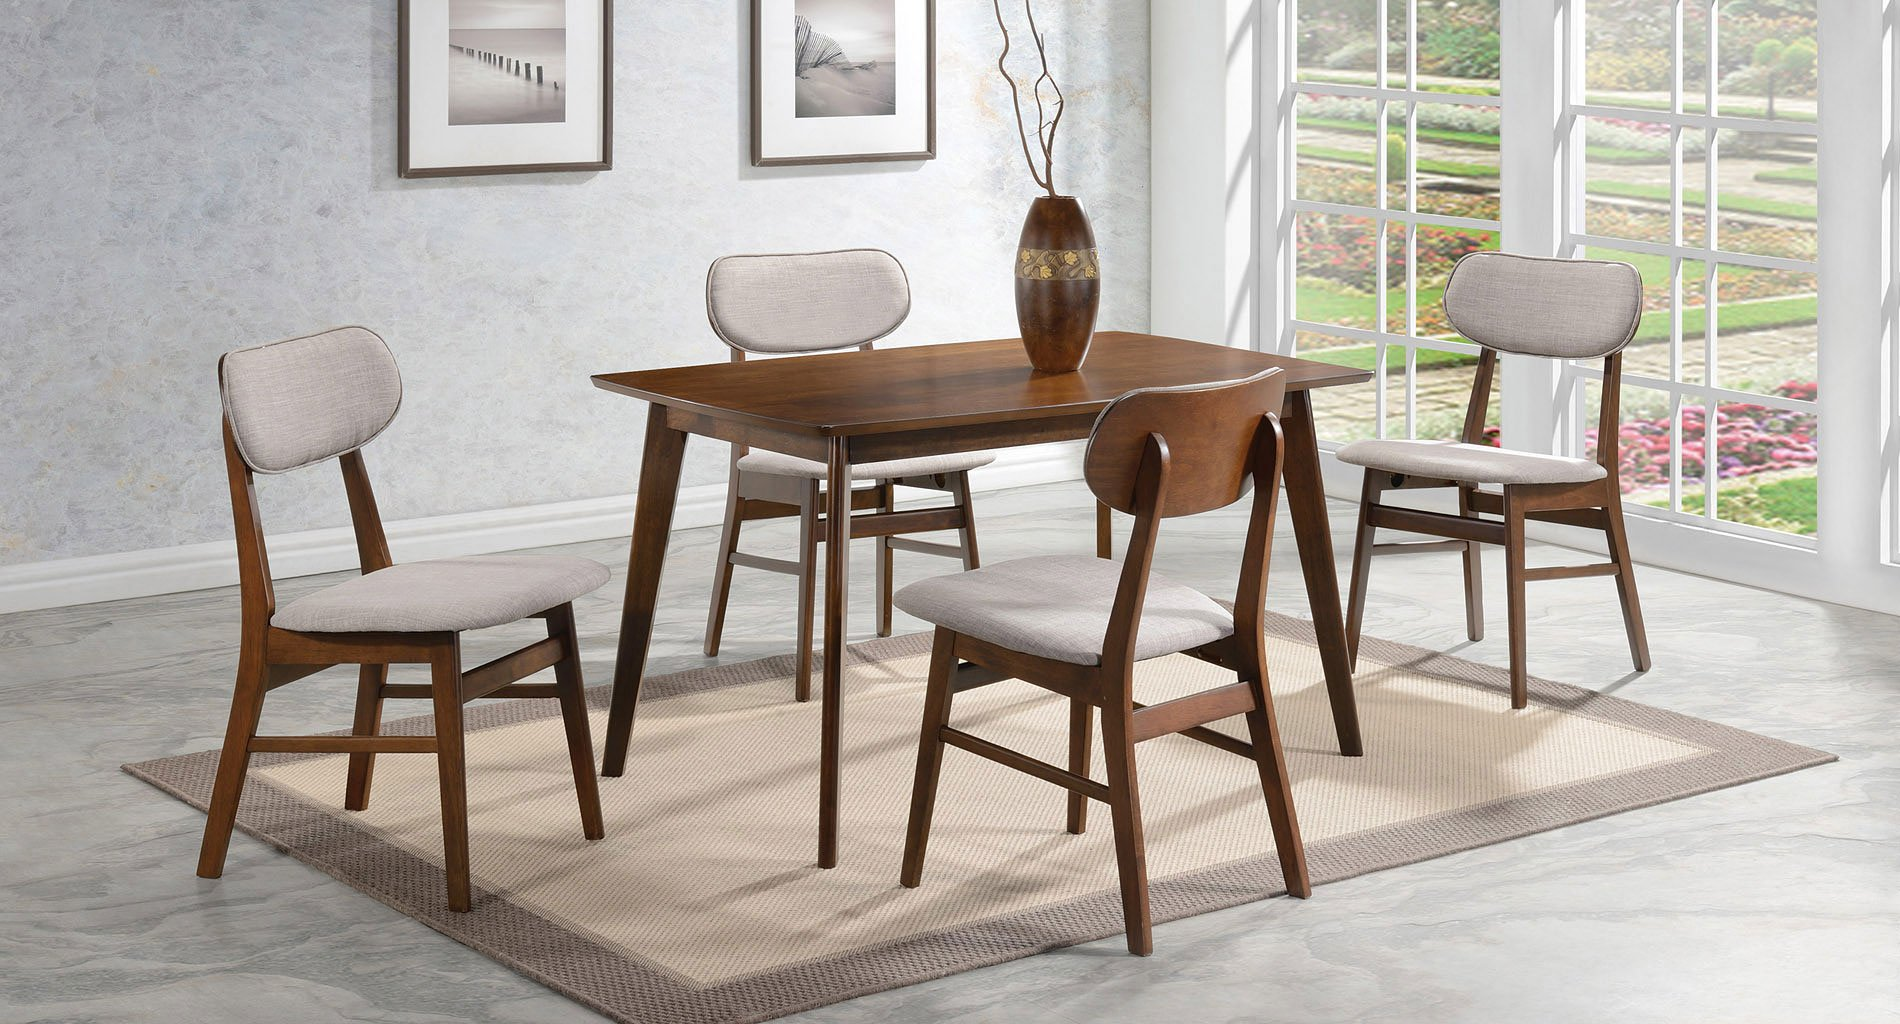 Kersey Dining Room Set W/ Cushioned Chairs